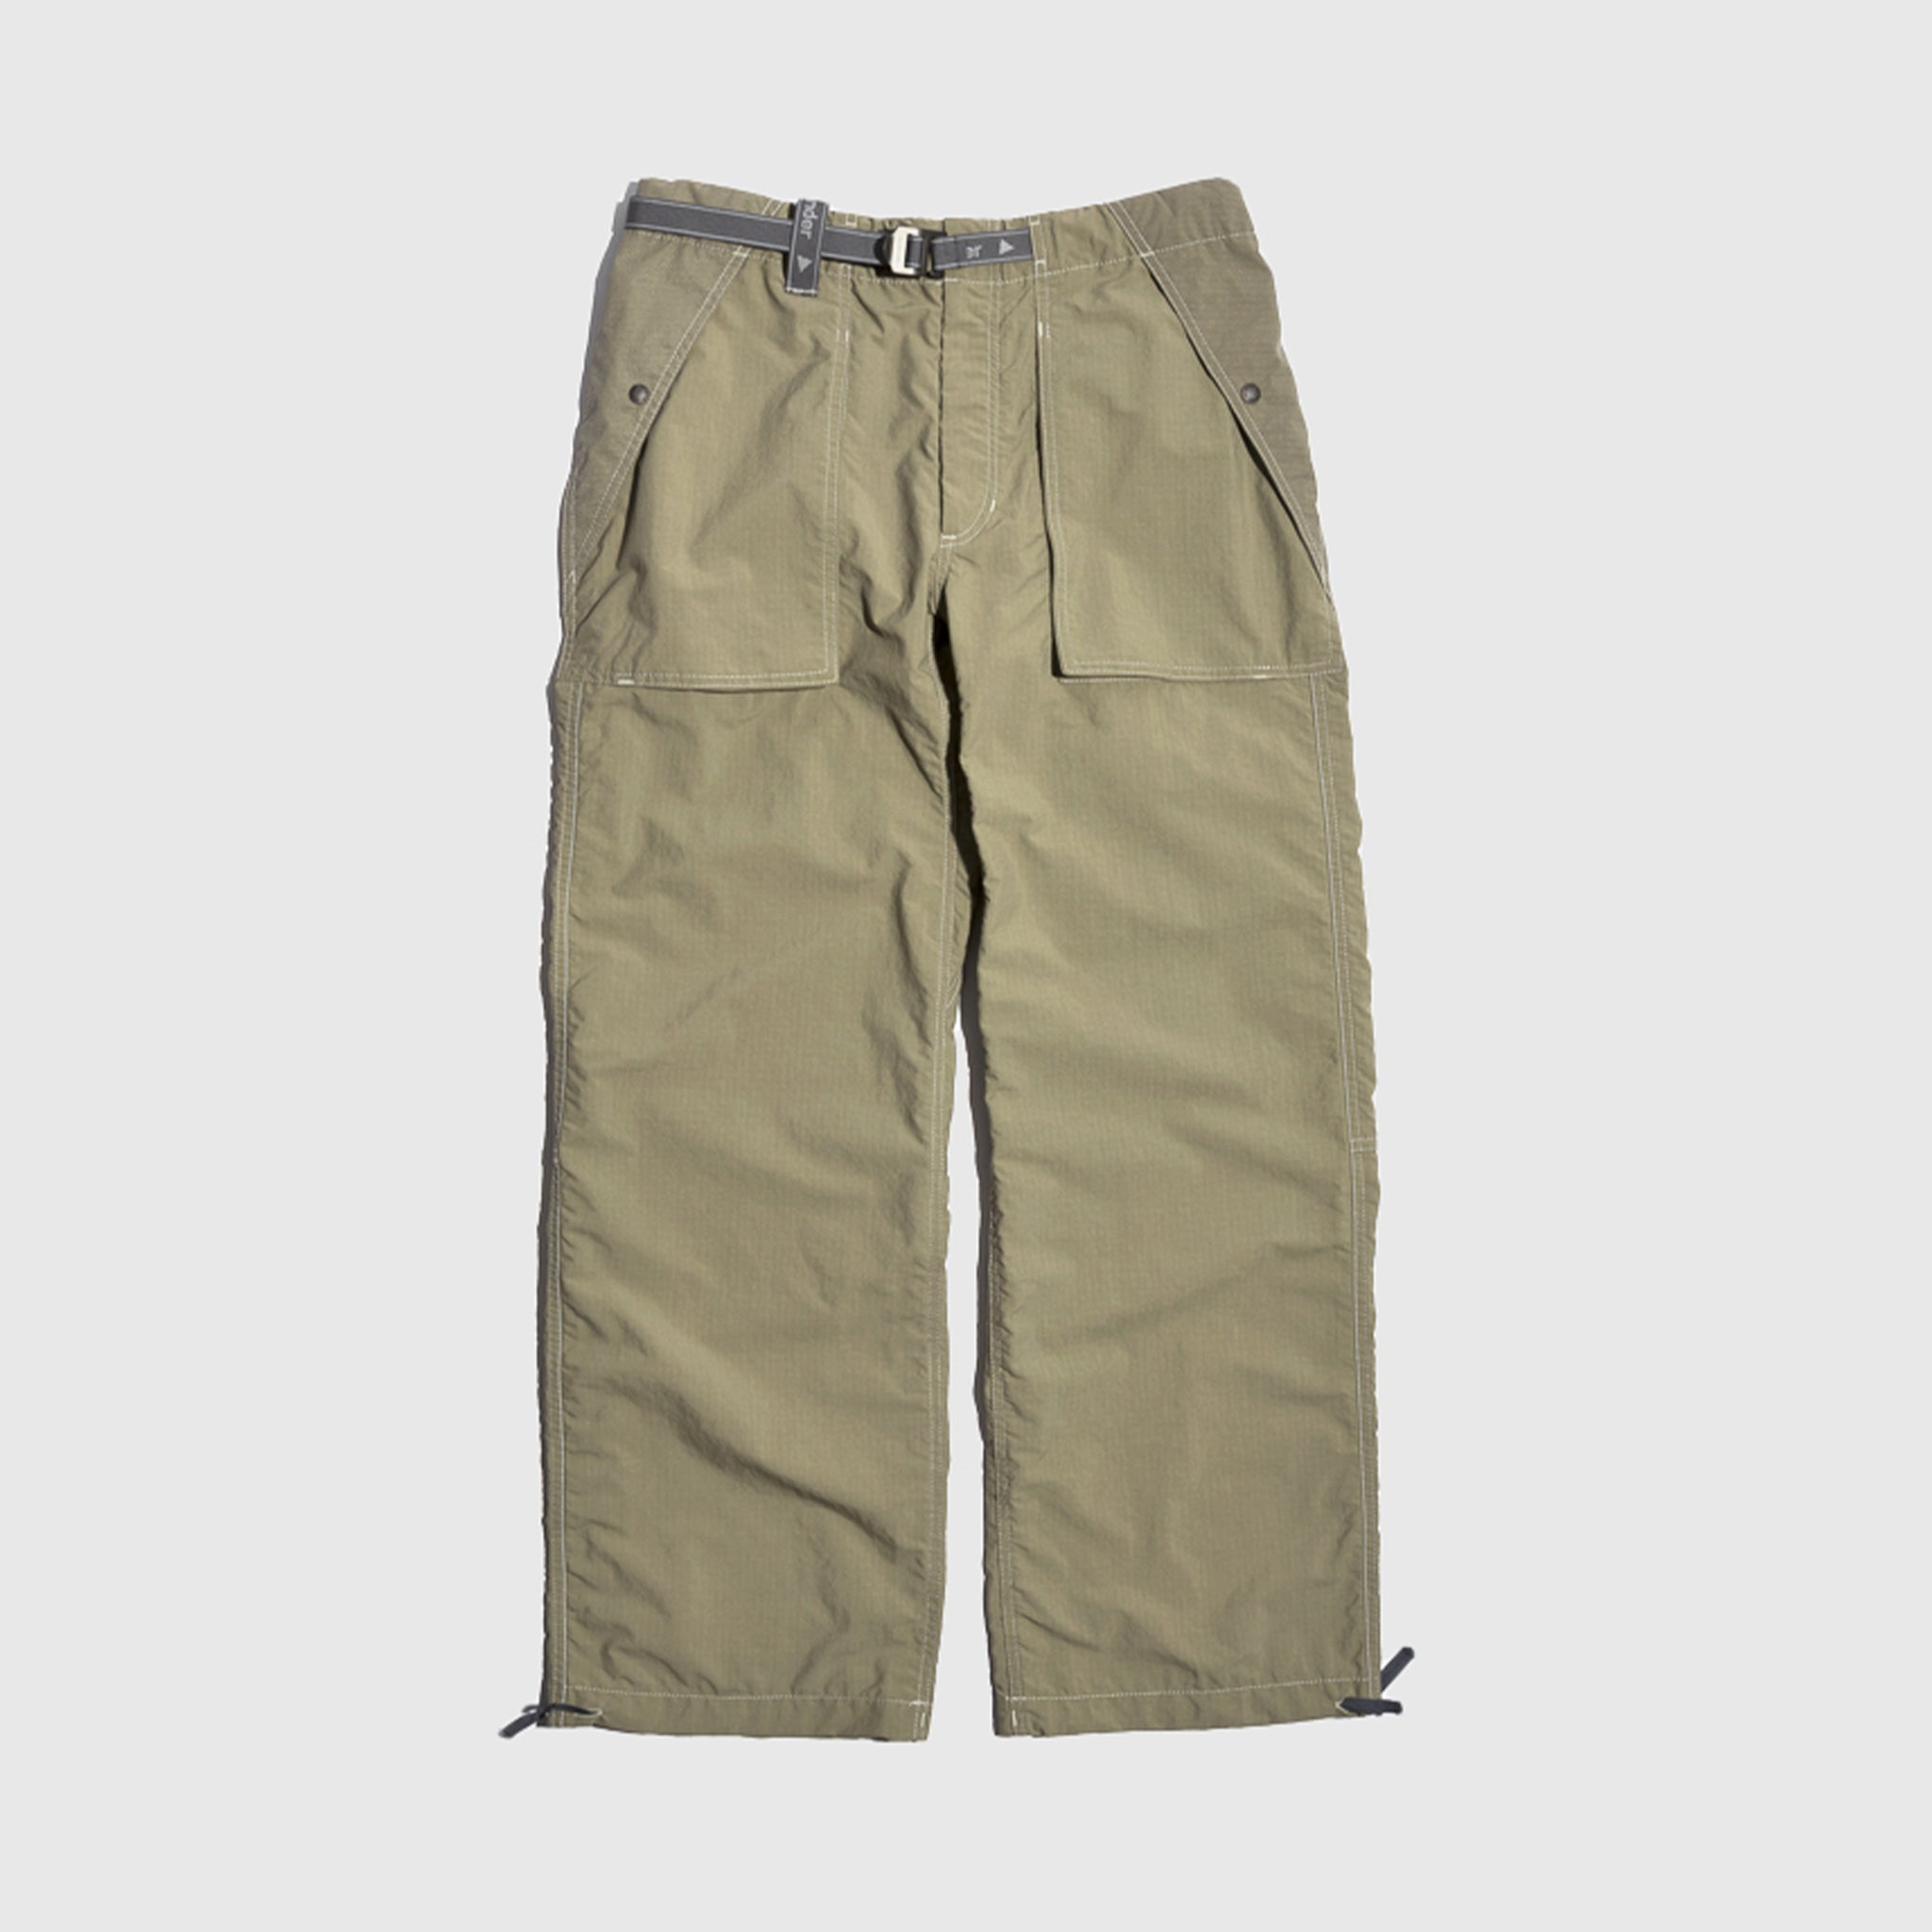 AND WANDER PERTEX NYLON RIPSTOP PANTS